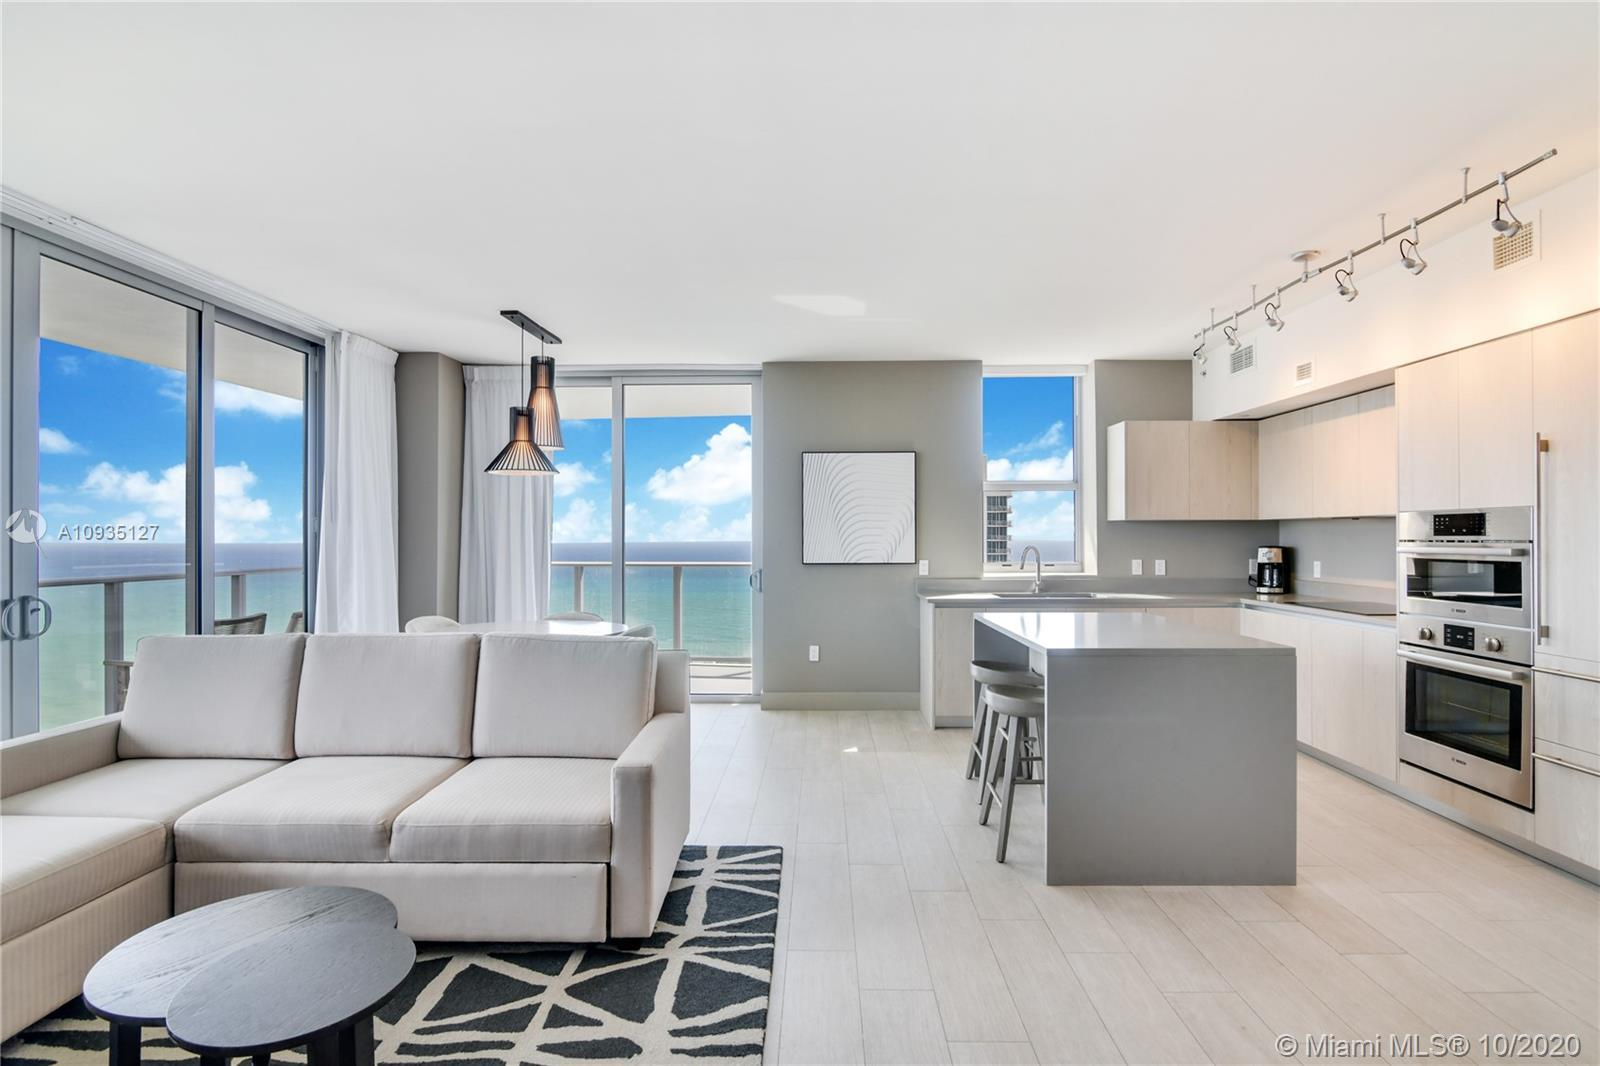 Beach-Inspired -Interiors Luxury high-rise turnkey unit with a new concept of condo-hotel 2BR 2BTH u